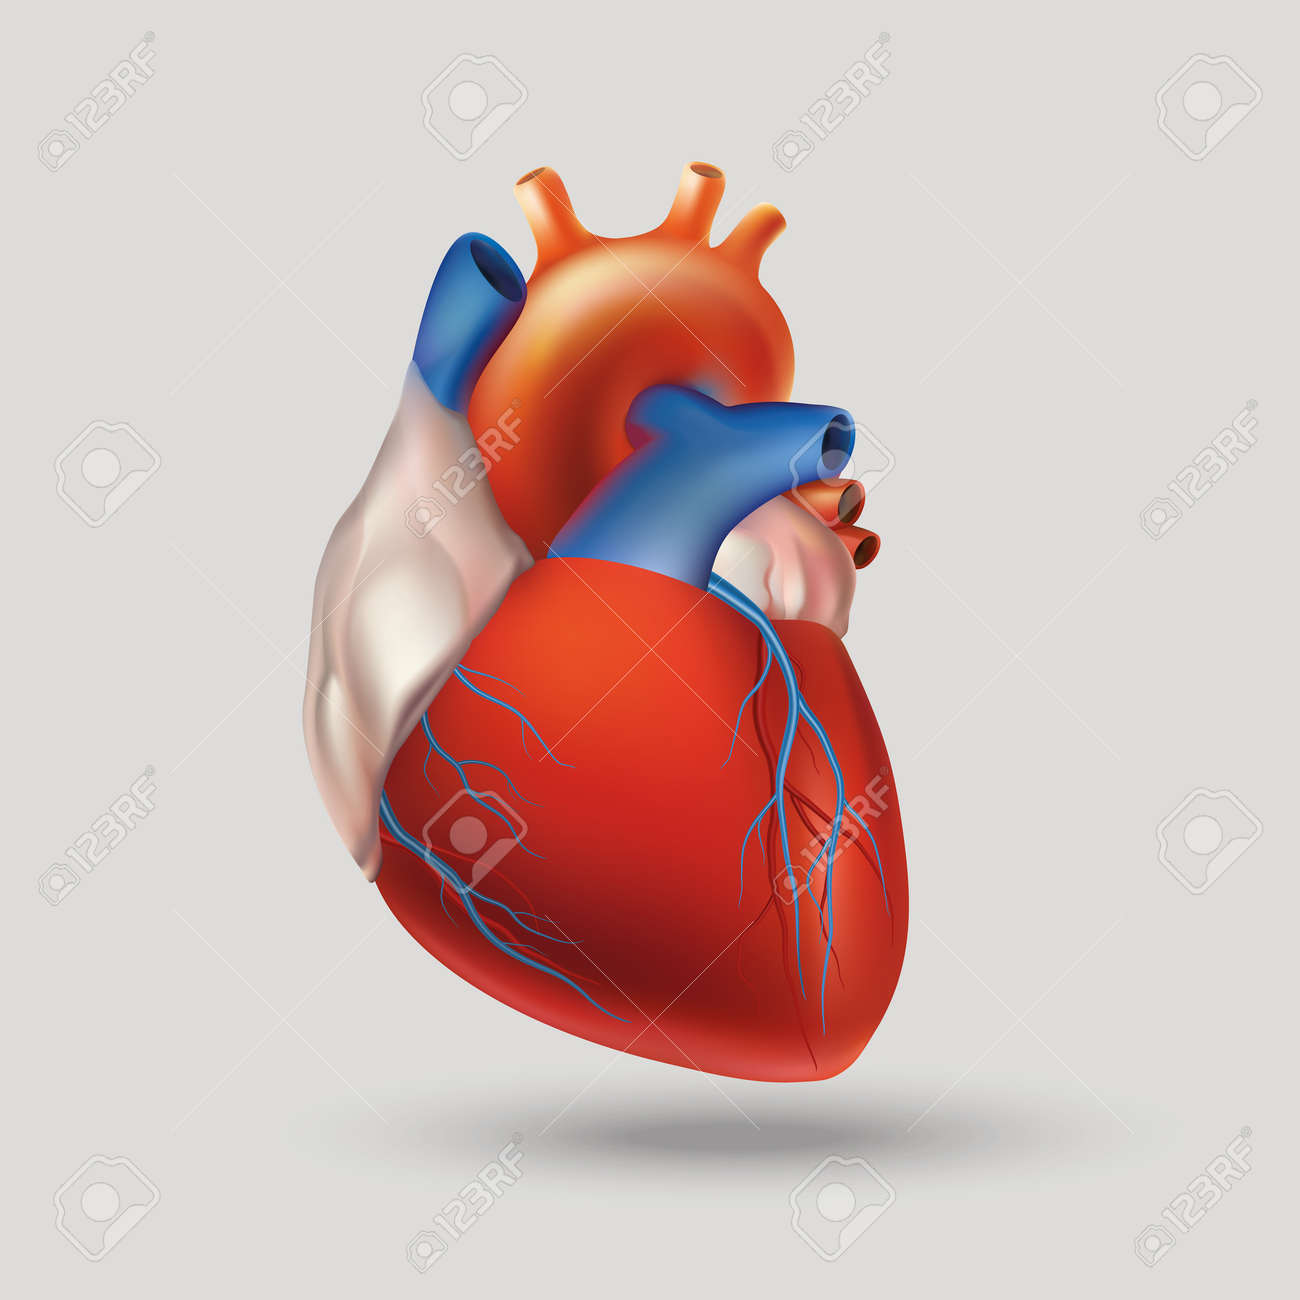 Circulatory System Stock Photos Royalty Free Circulatory System Images